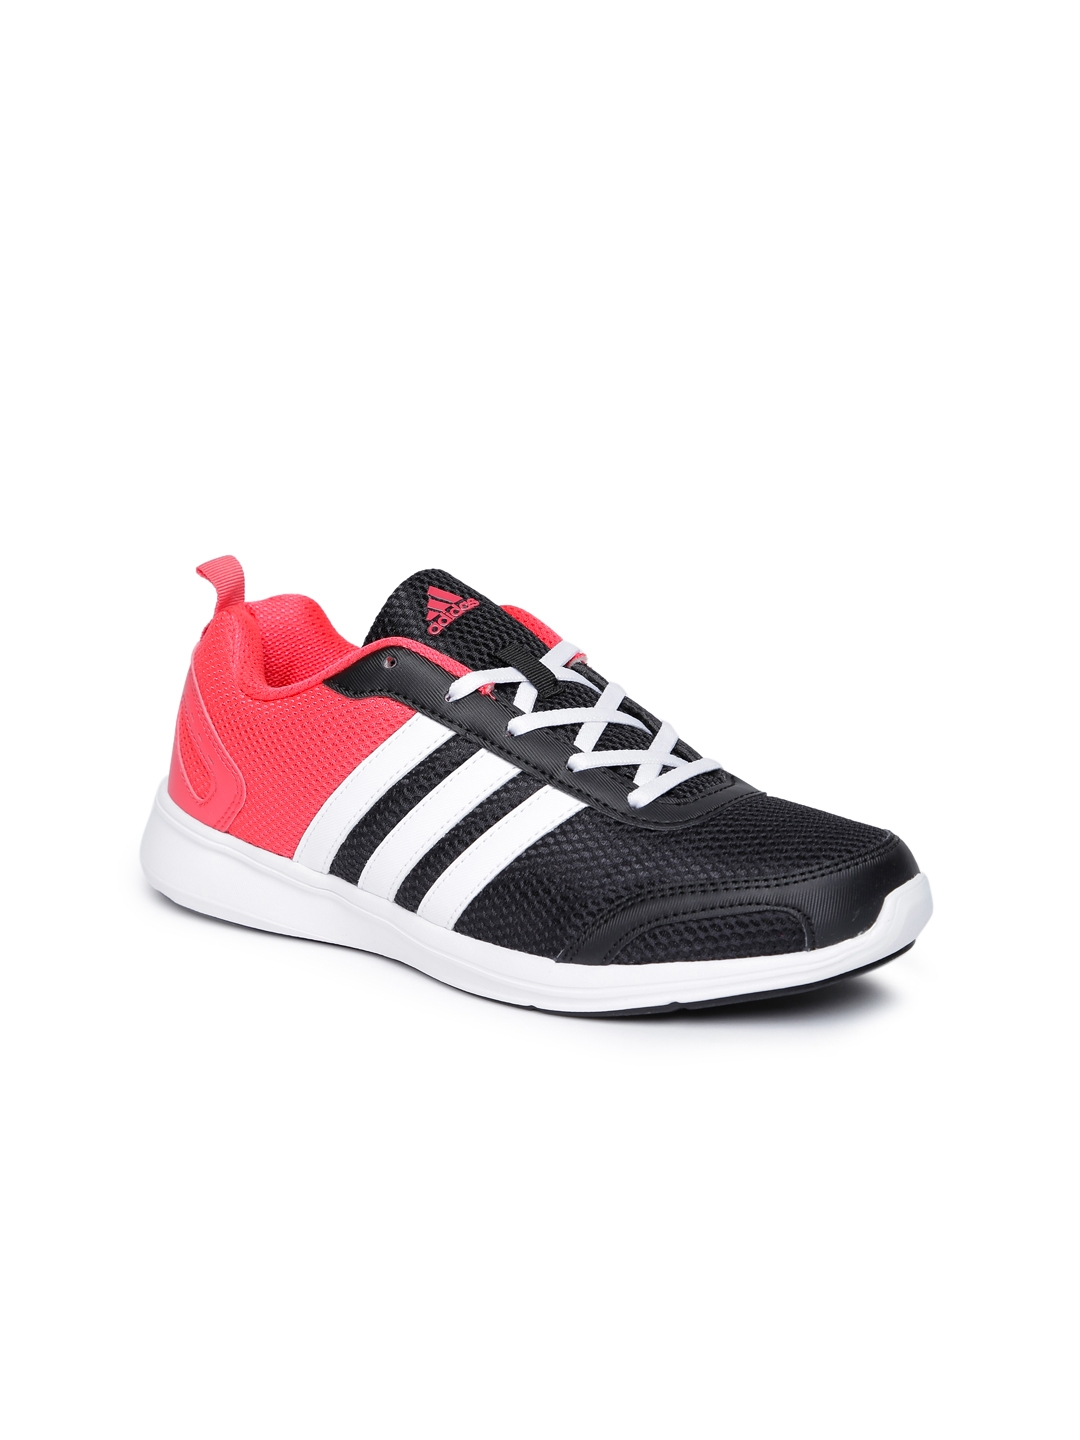 Buy Adidas Women Black \u0026 Pink Astrolite Running Shoes - Sports Shoes for  Women 1731570 | Myntra